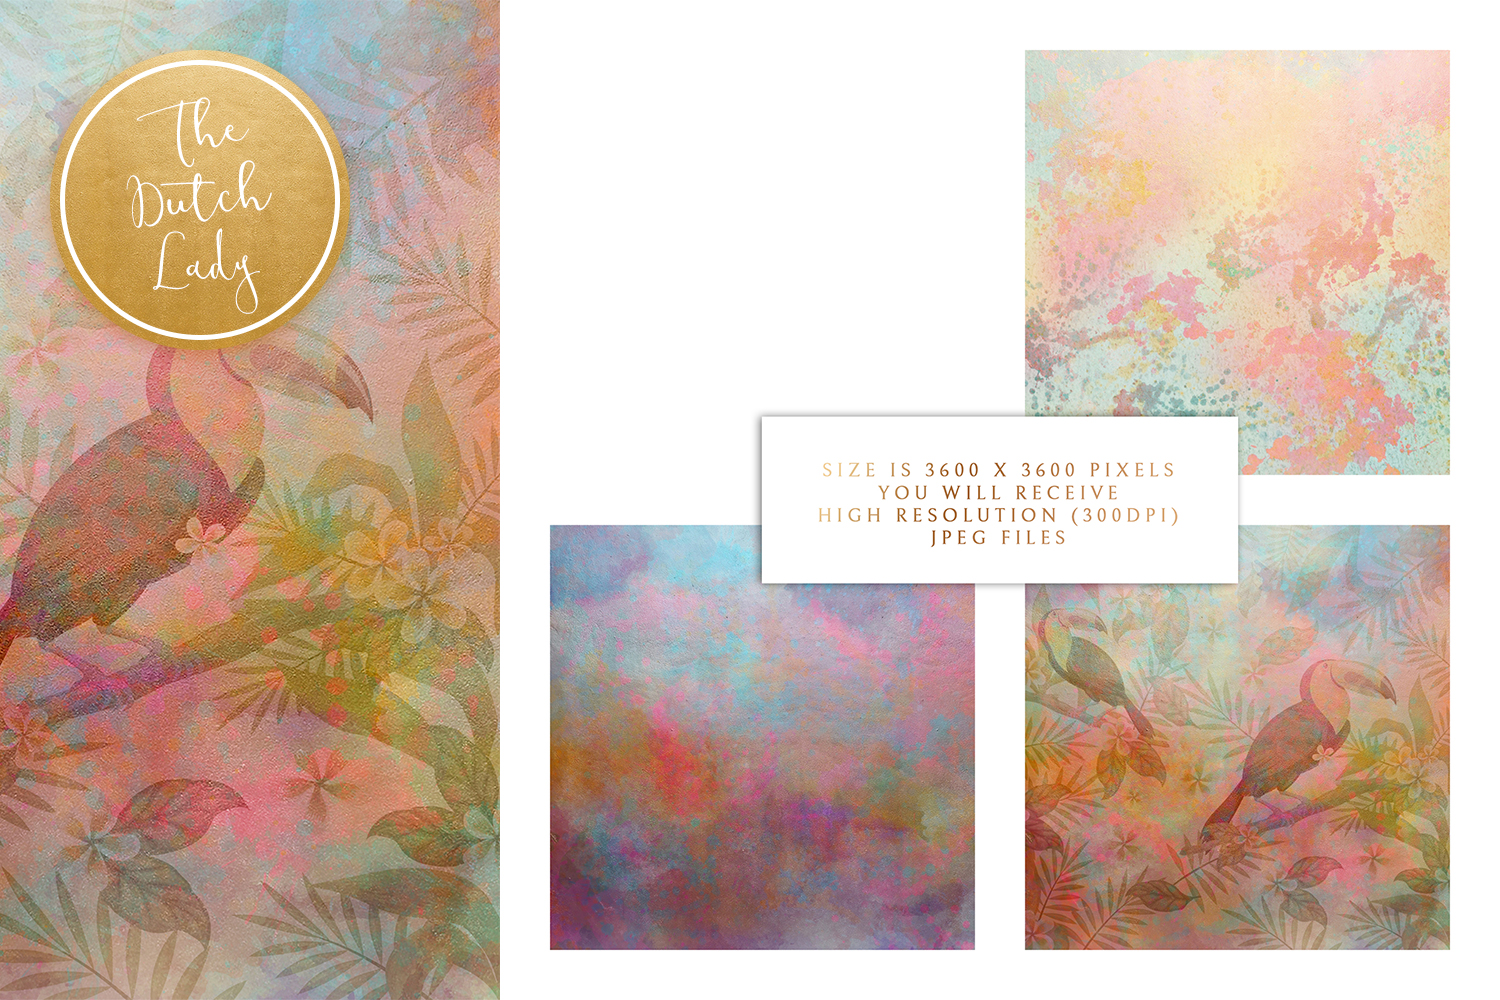 Floral Backgrounds & Paper Designs - Victoria example image 3